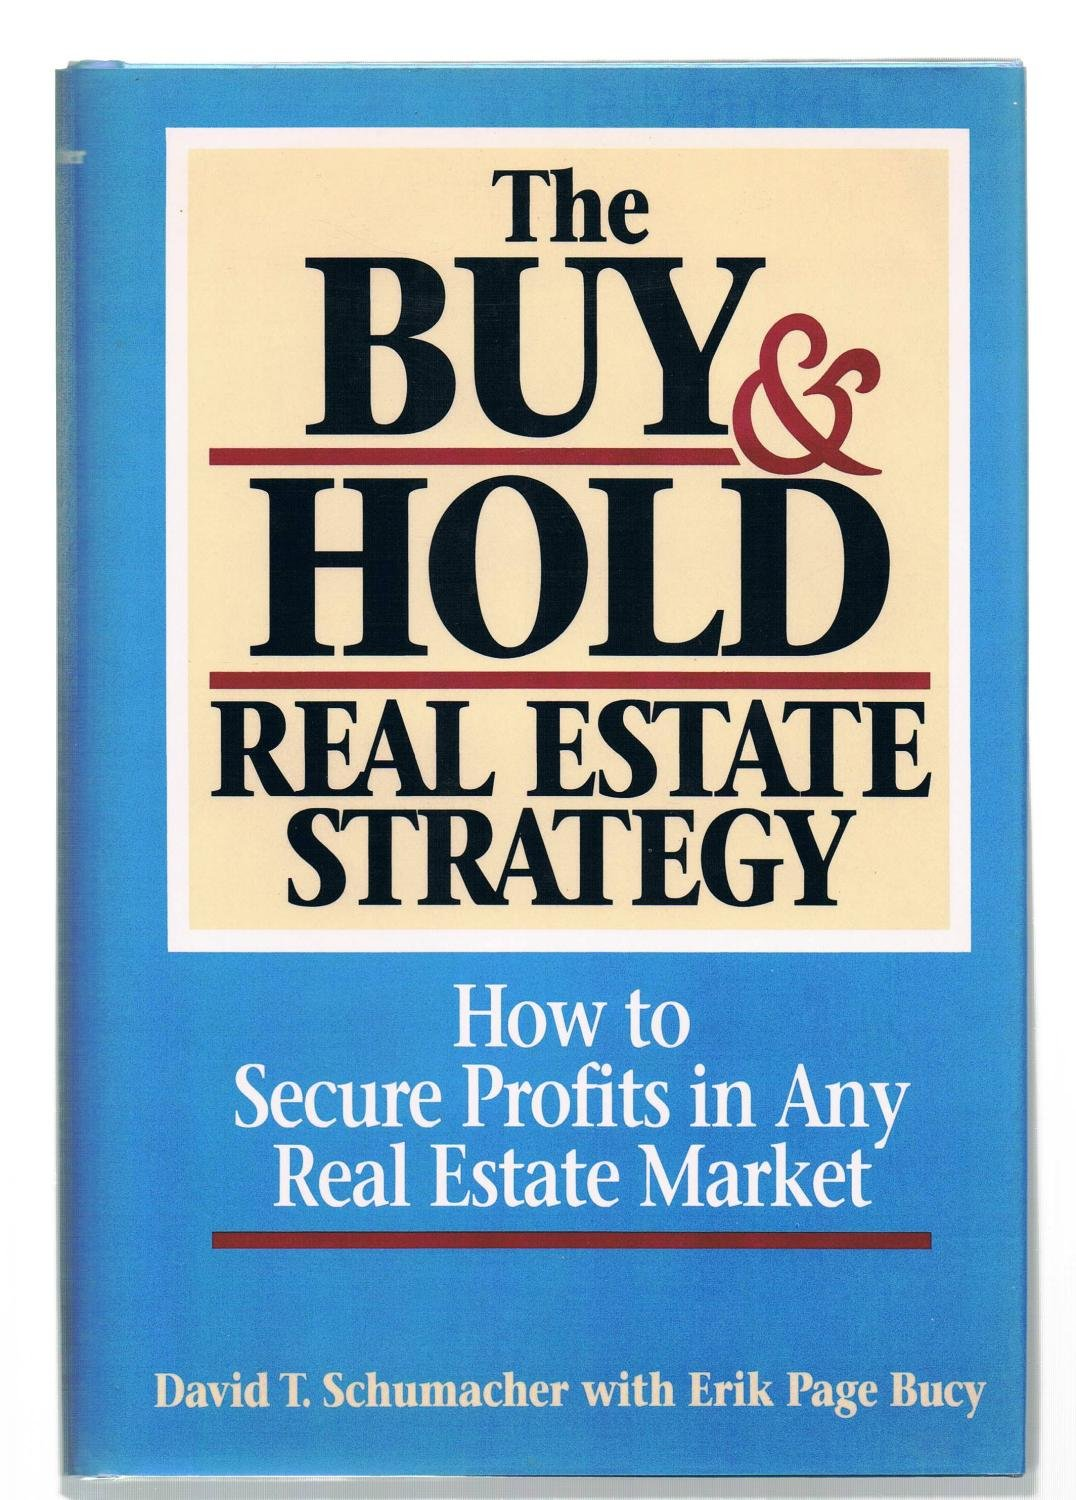 The Buy and Hold Real Estate Strategy: How to Secure Profits in Any Real Estate Market